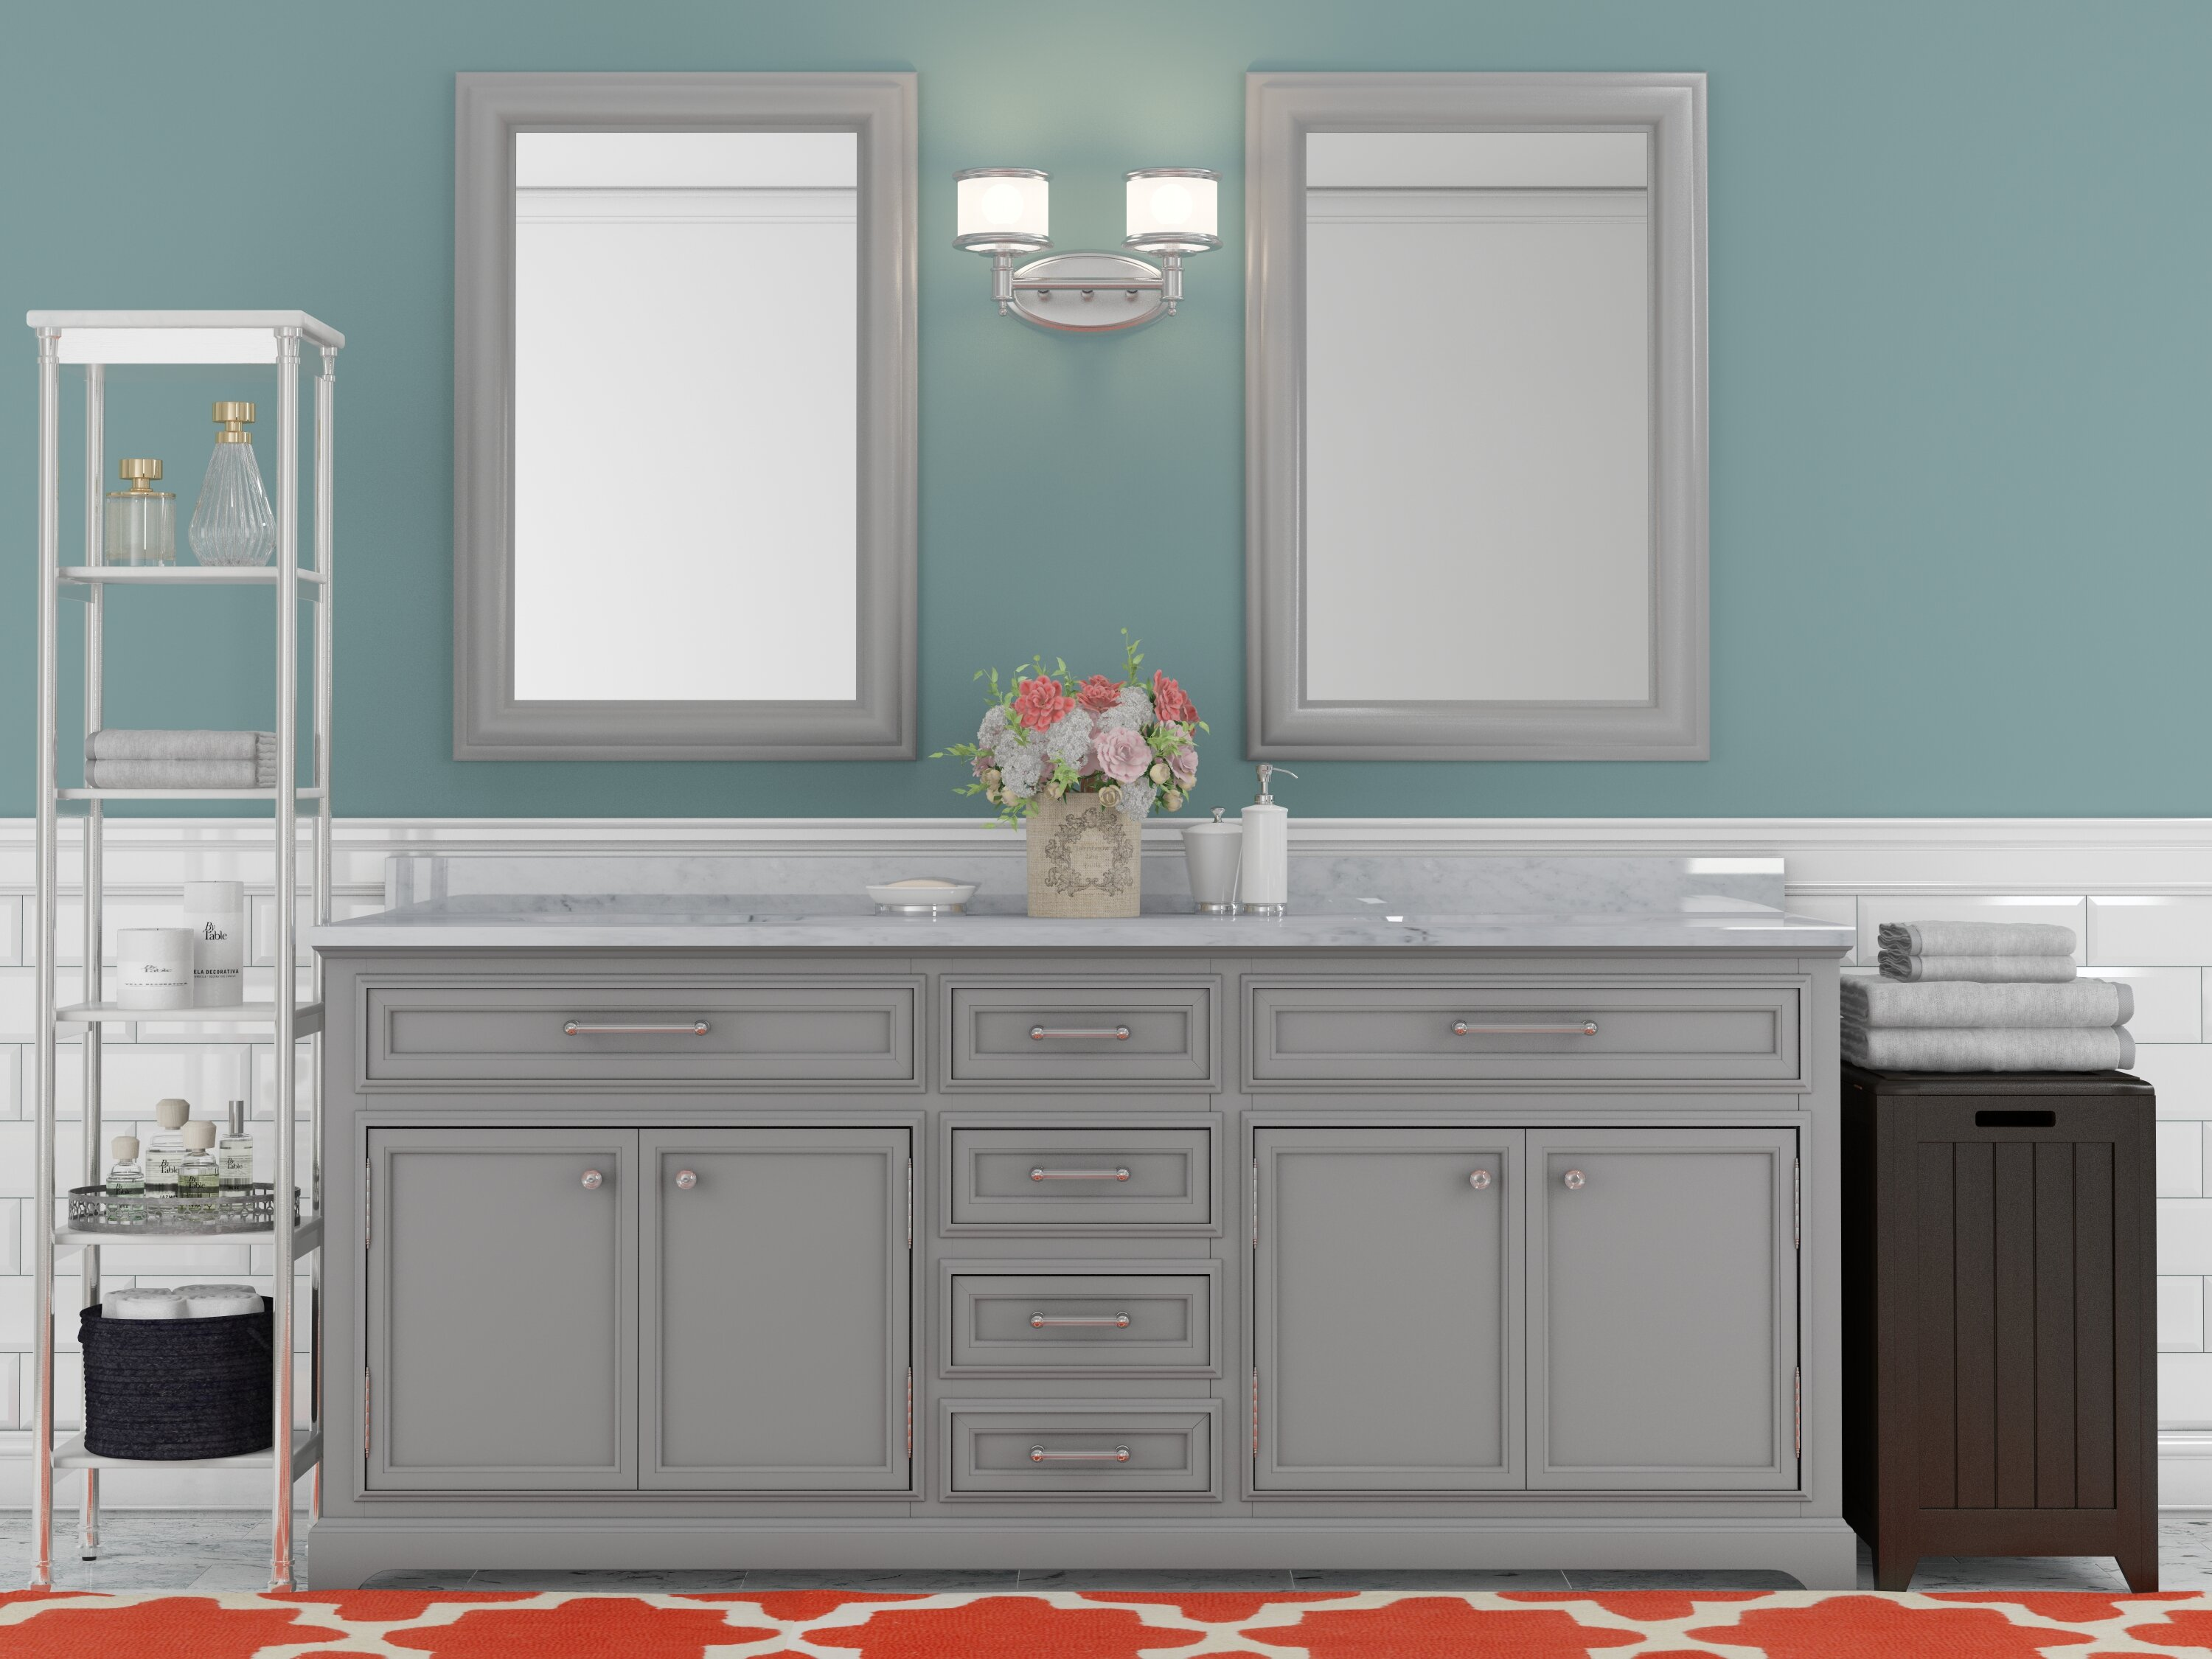 Wayfair Bathroom Vanity >> How To Choose A Bathroom Vanity Wayfair